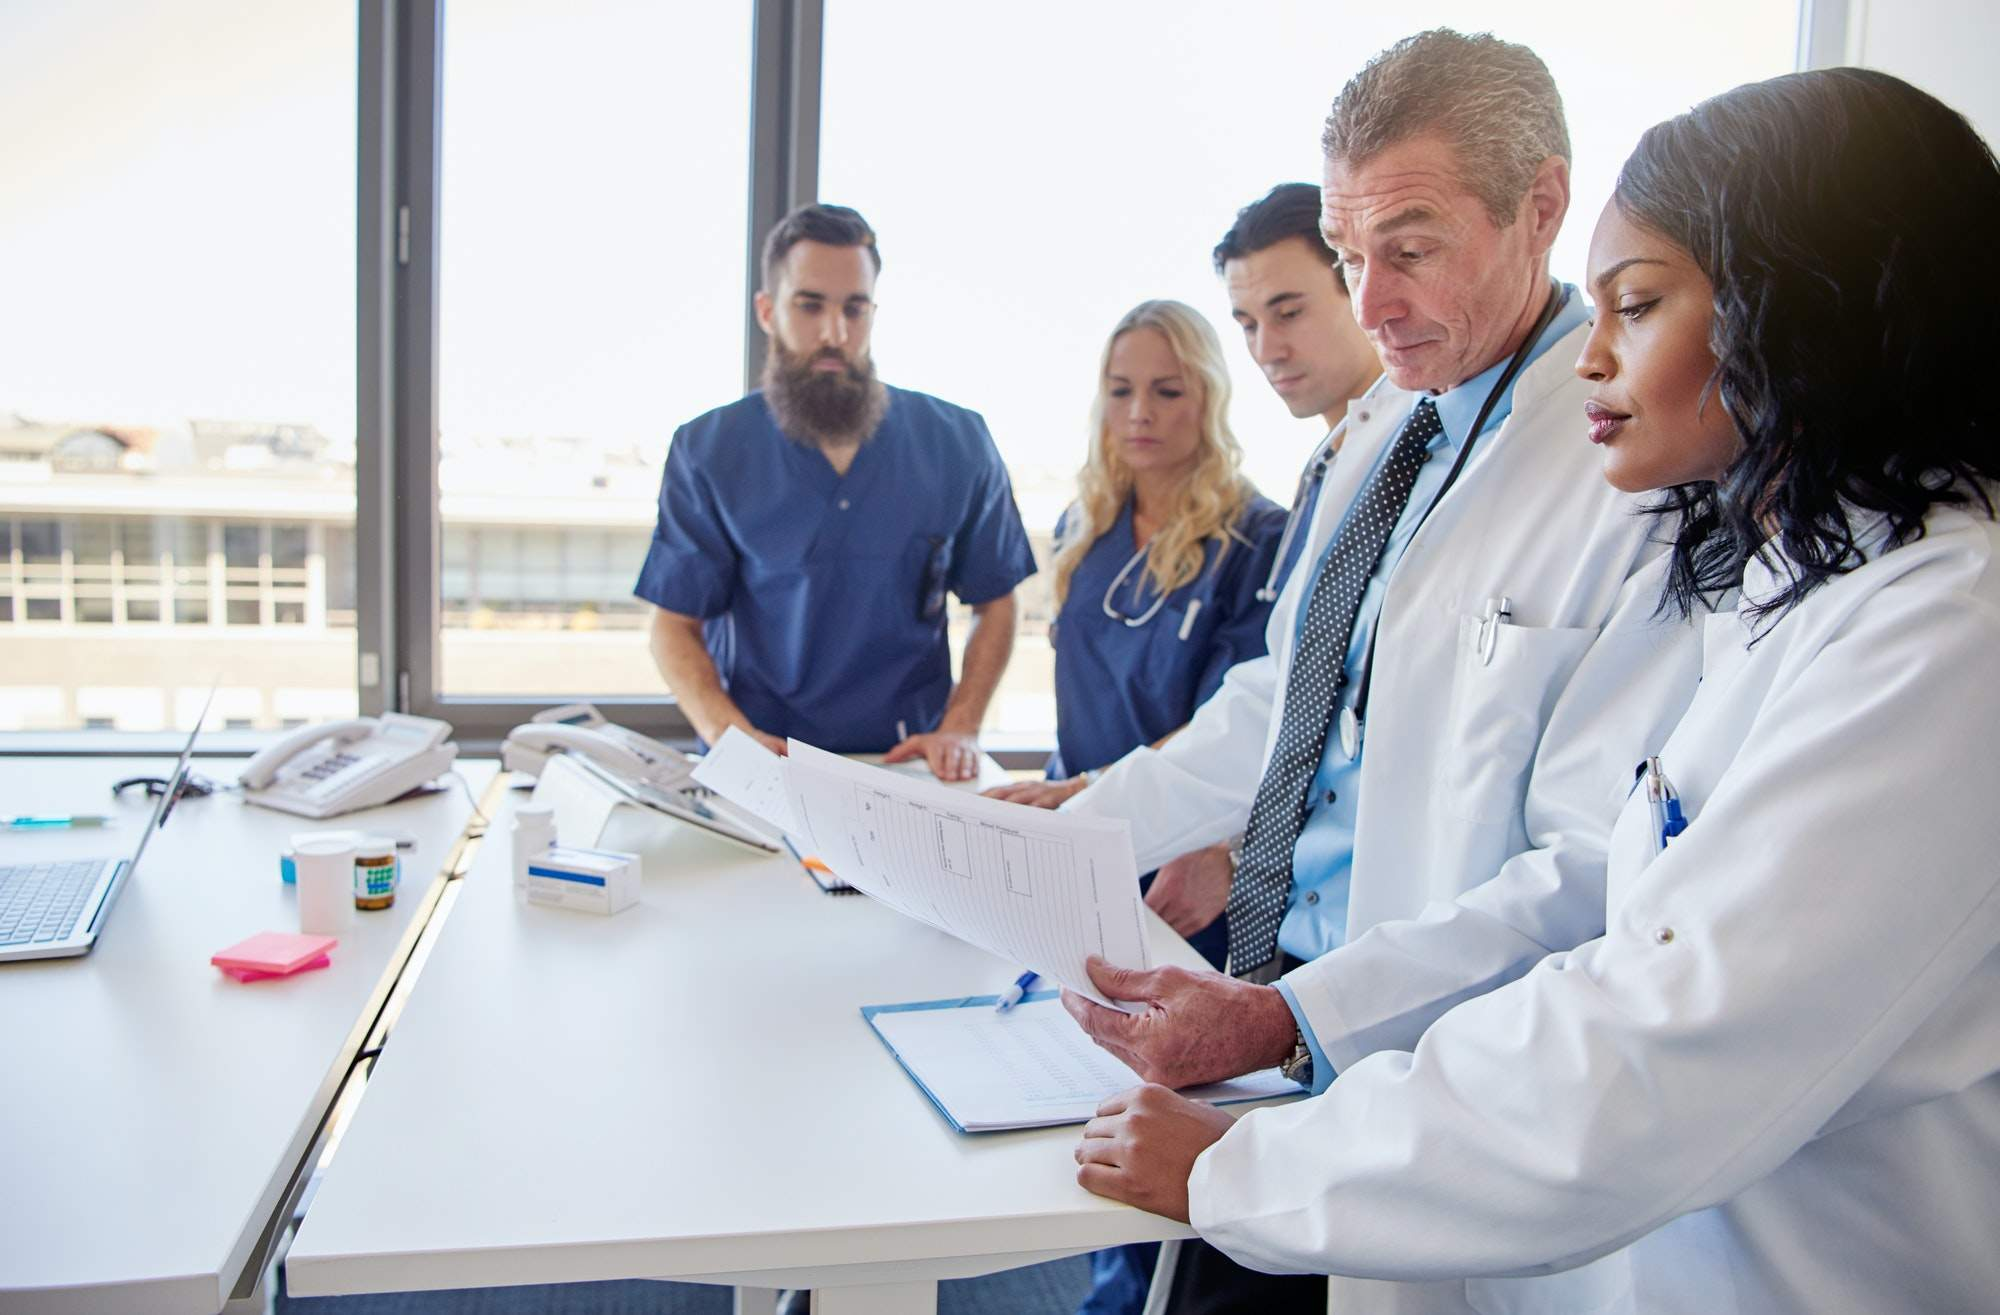 The doctors making diagnosis during the meeting